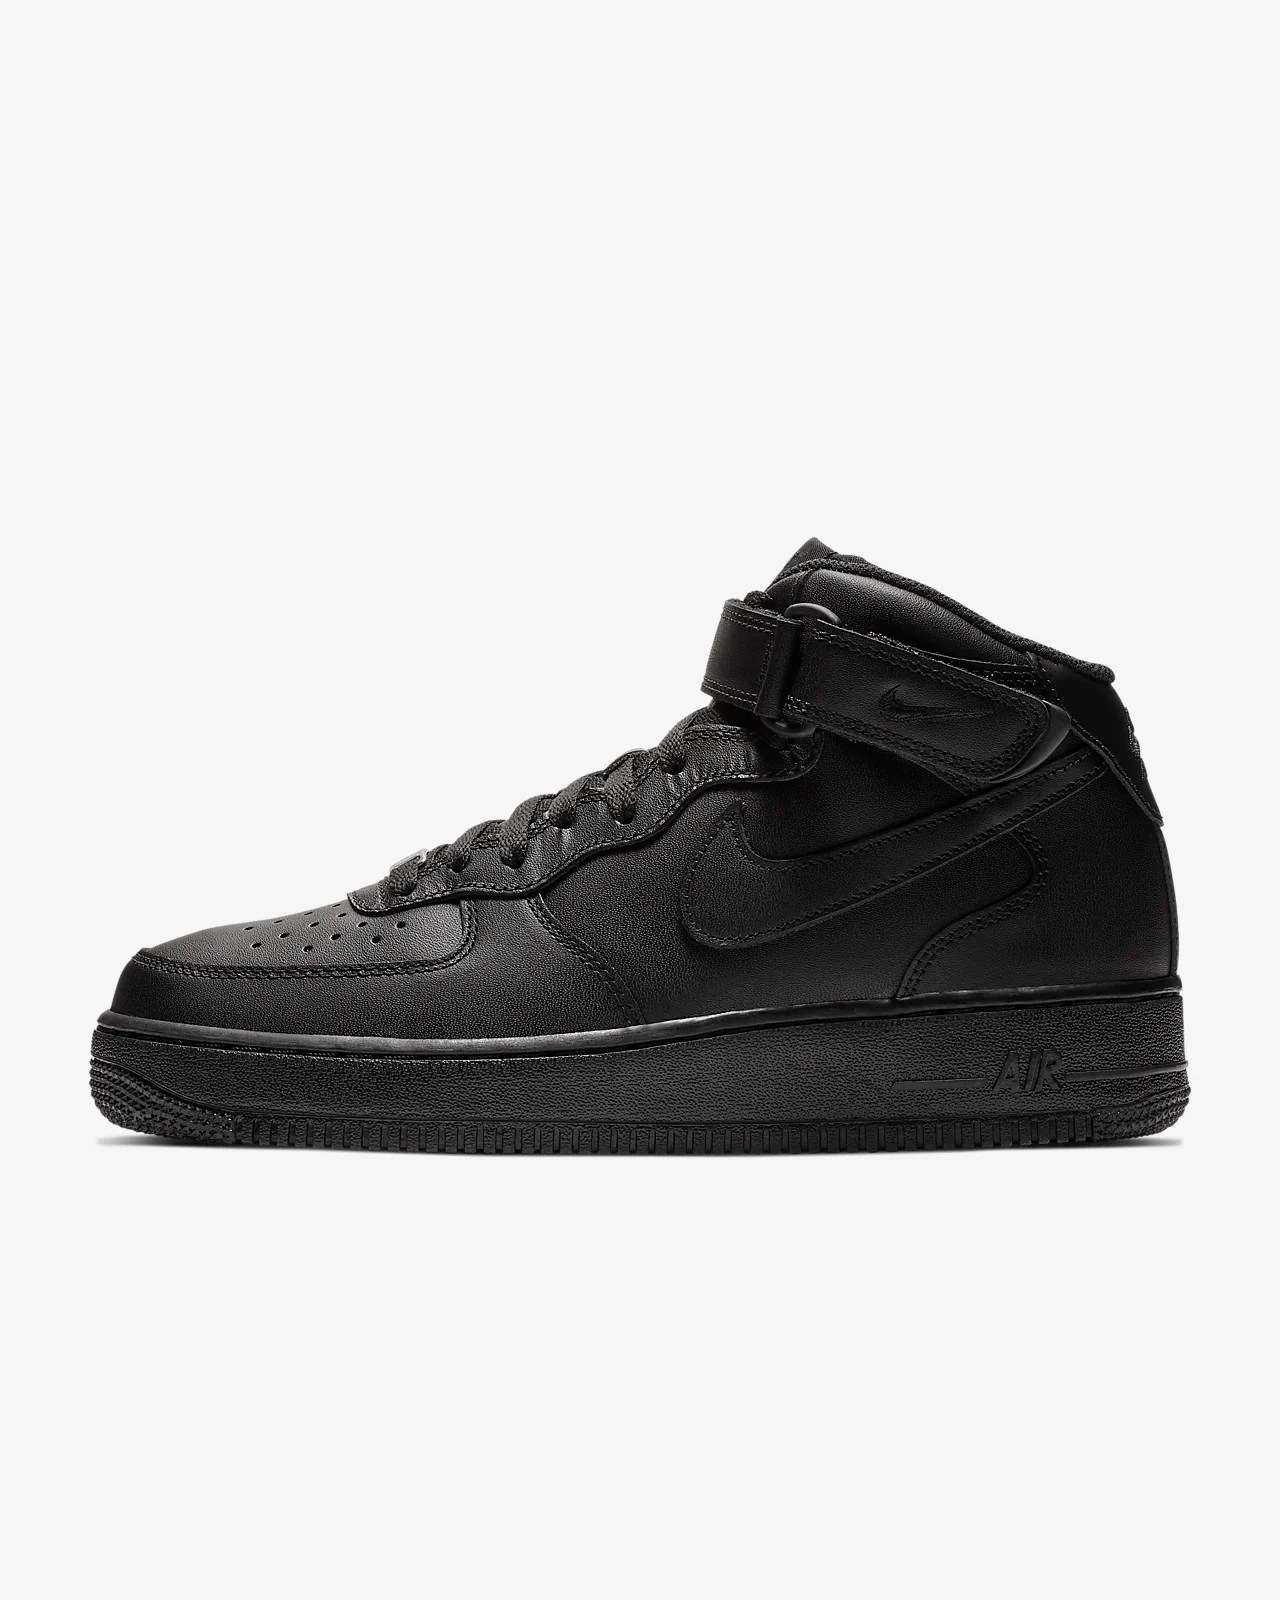 Schuh Okay Online Shop Nike Air Force 1 Mid 07 Men S Shoe